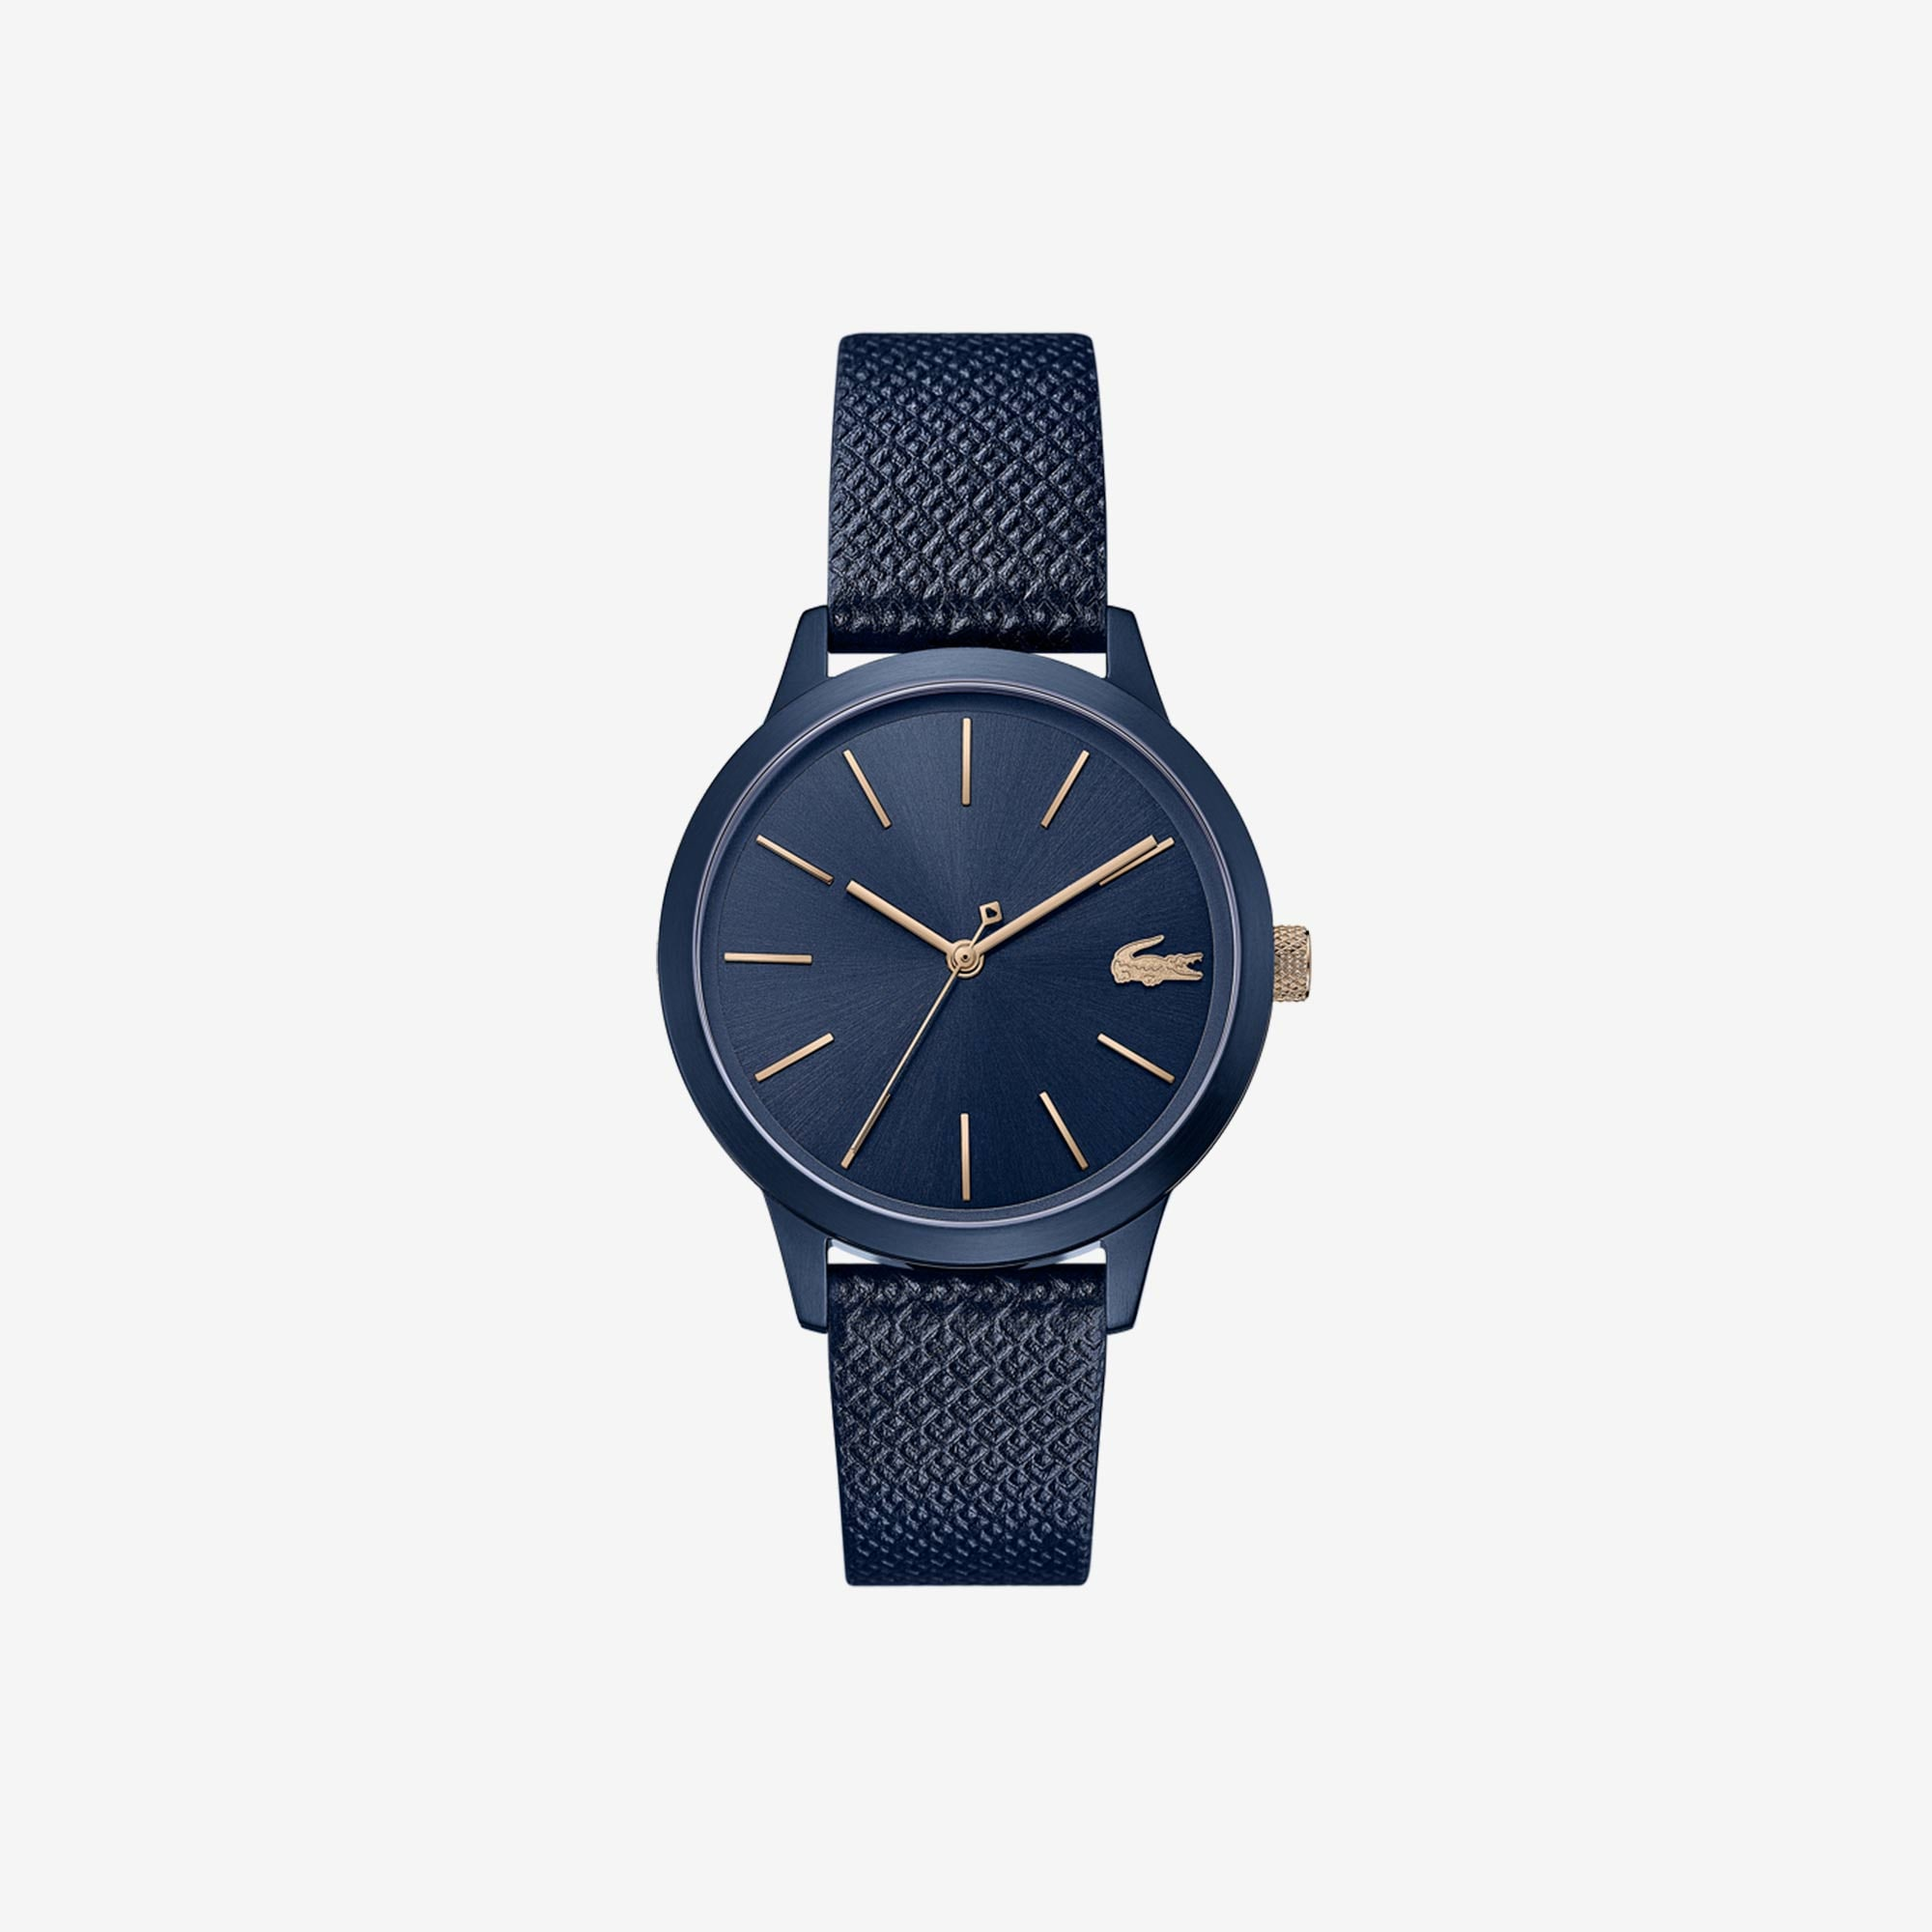 Ladies Lacoste 12.12 Premium Watch With Blue Leather With Embossed Petit Piqué Pattern Strap